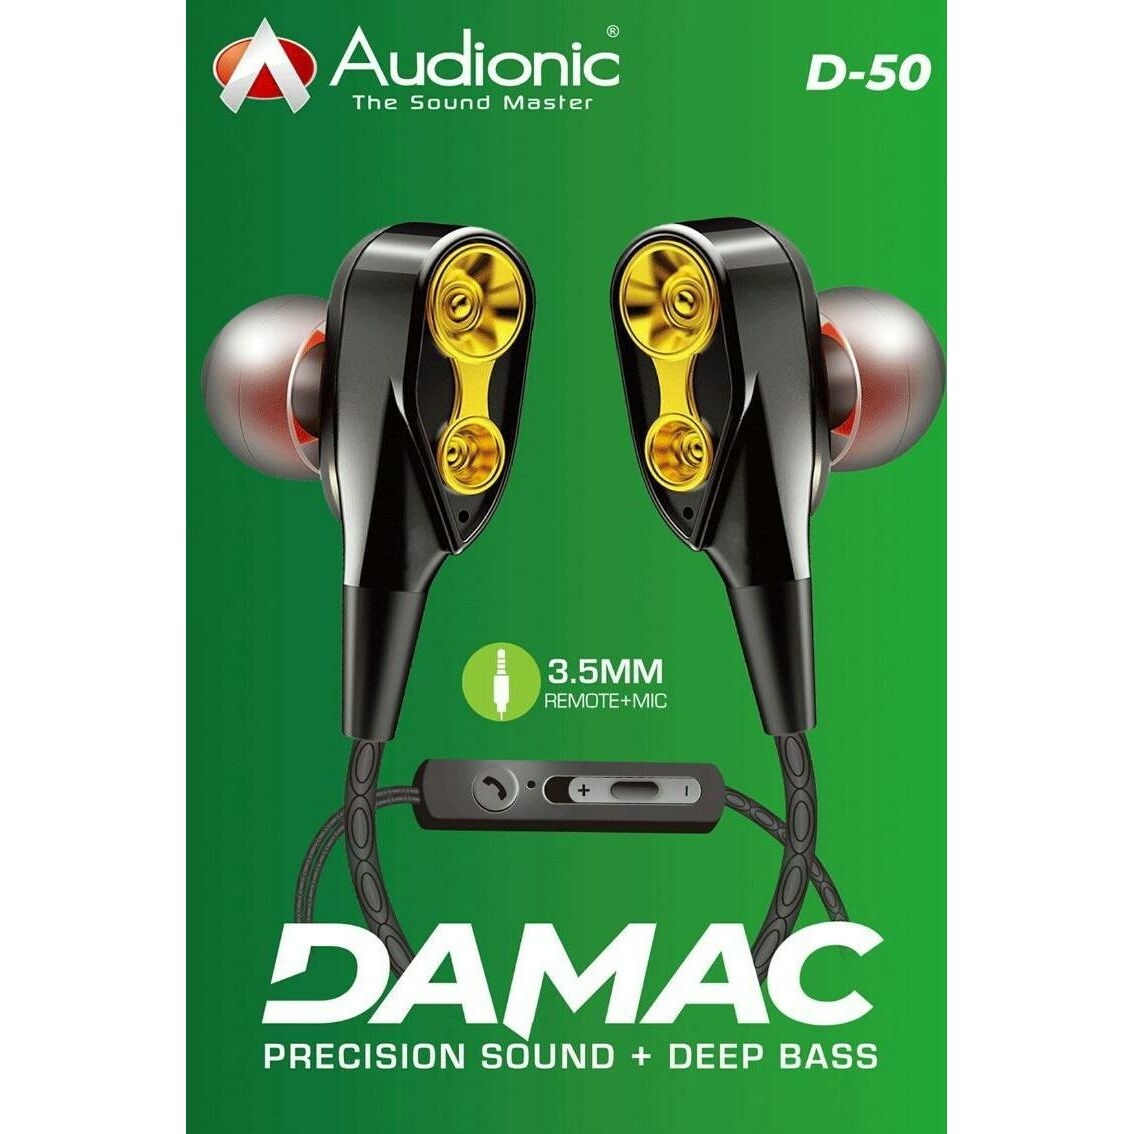 Audionic Damac D-50 Earphone